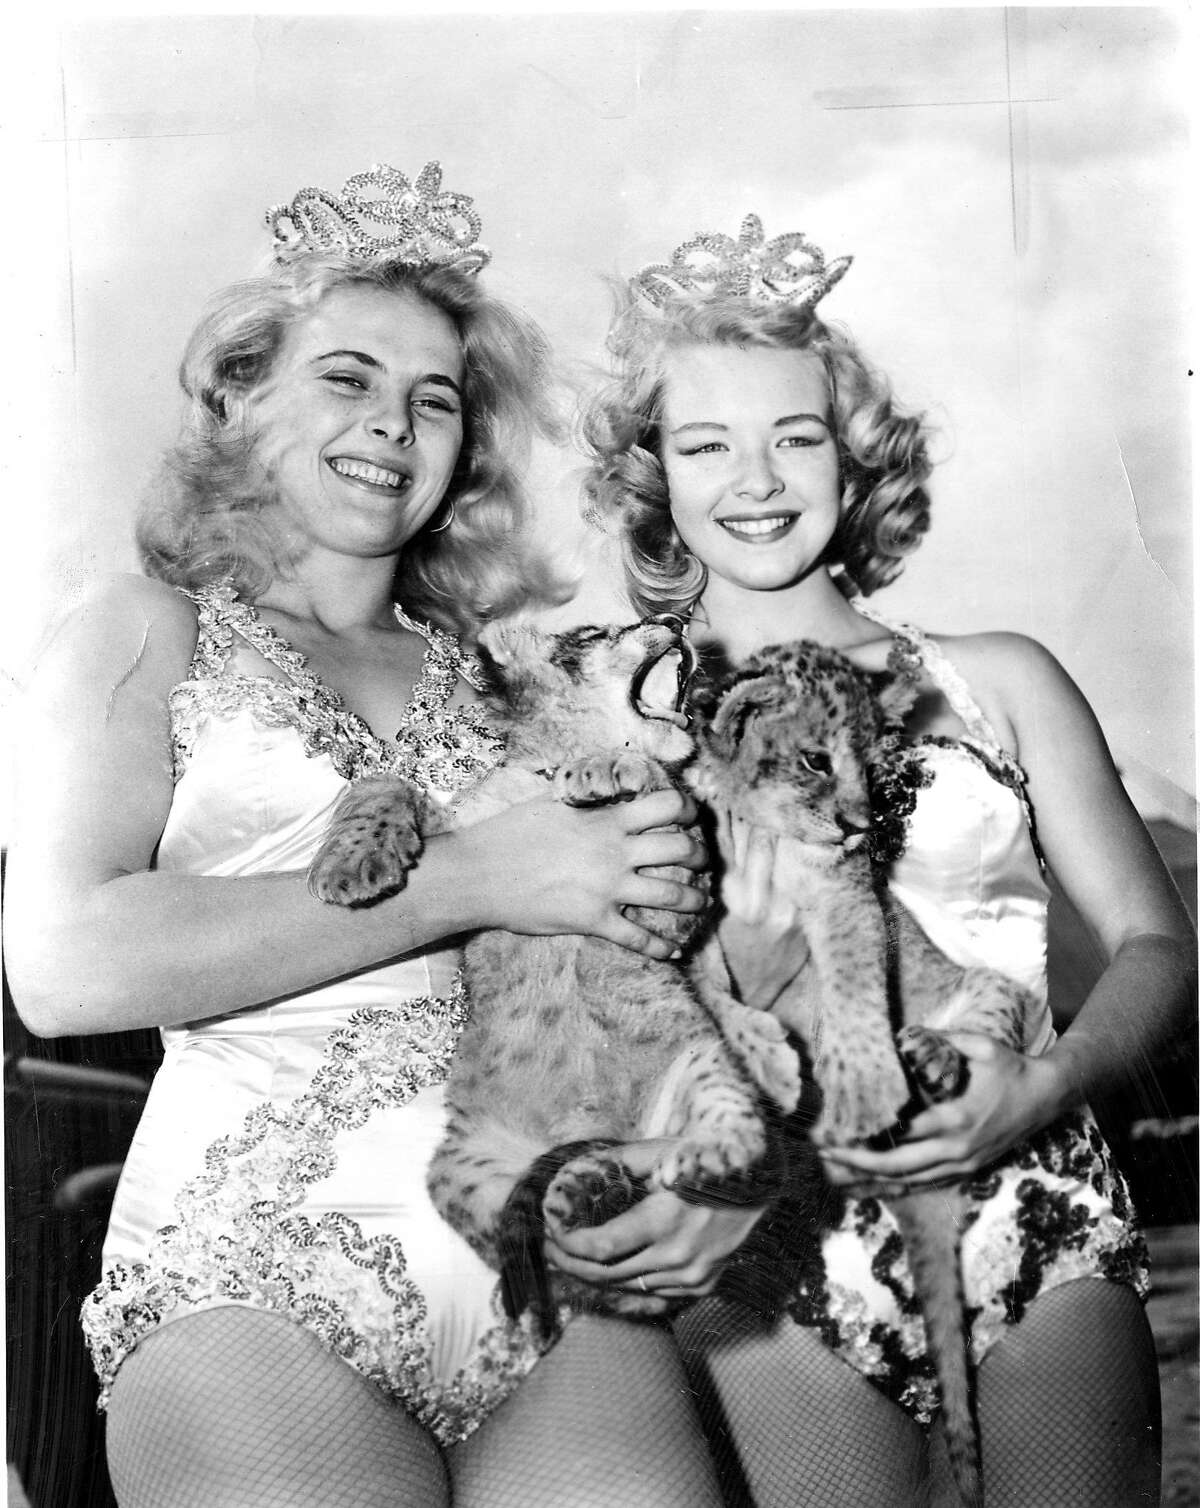 Original caption: Two pretty members of the aerial ballet corps. with the James Bros. Circus are Sally Winslow and Bettie Provine, holding two baby lion cubs recently born on the big show.